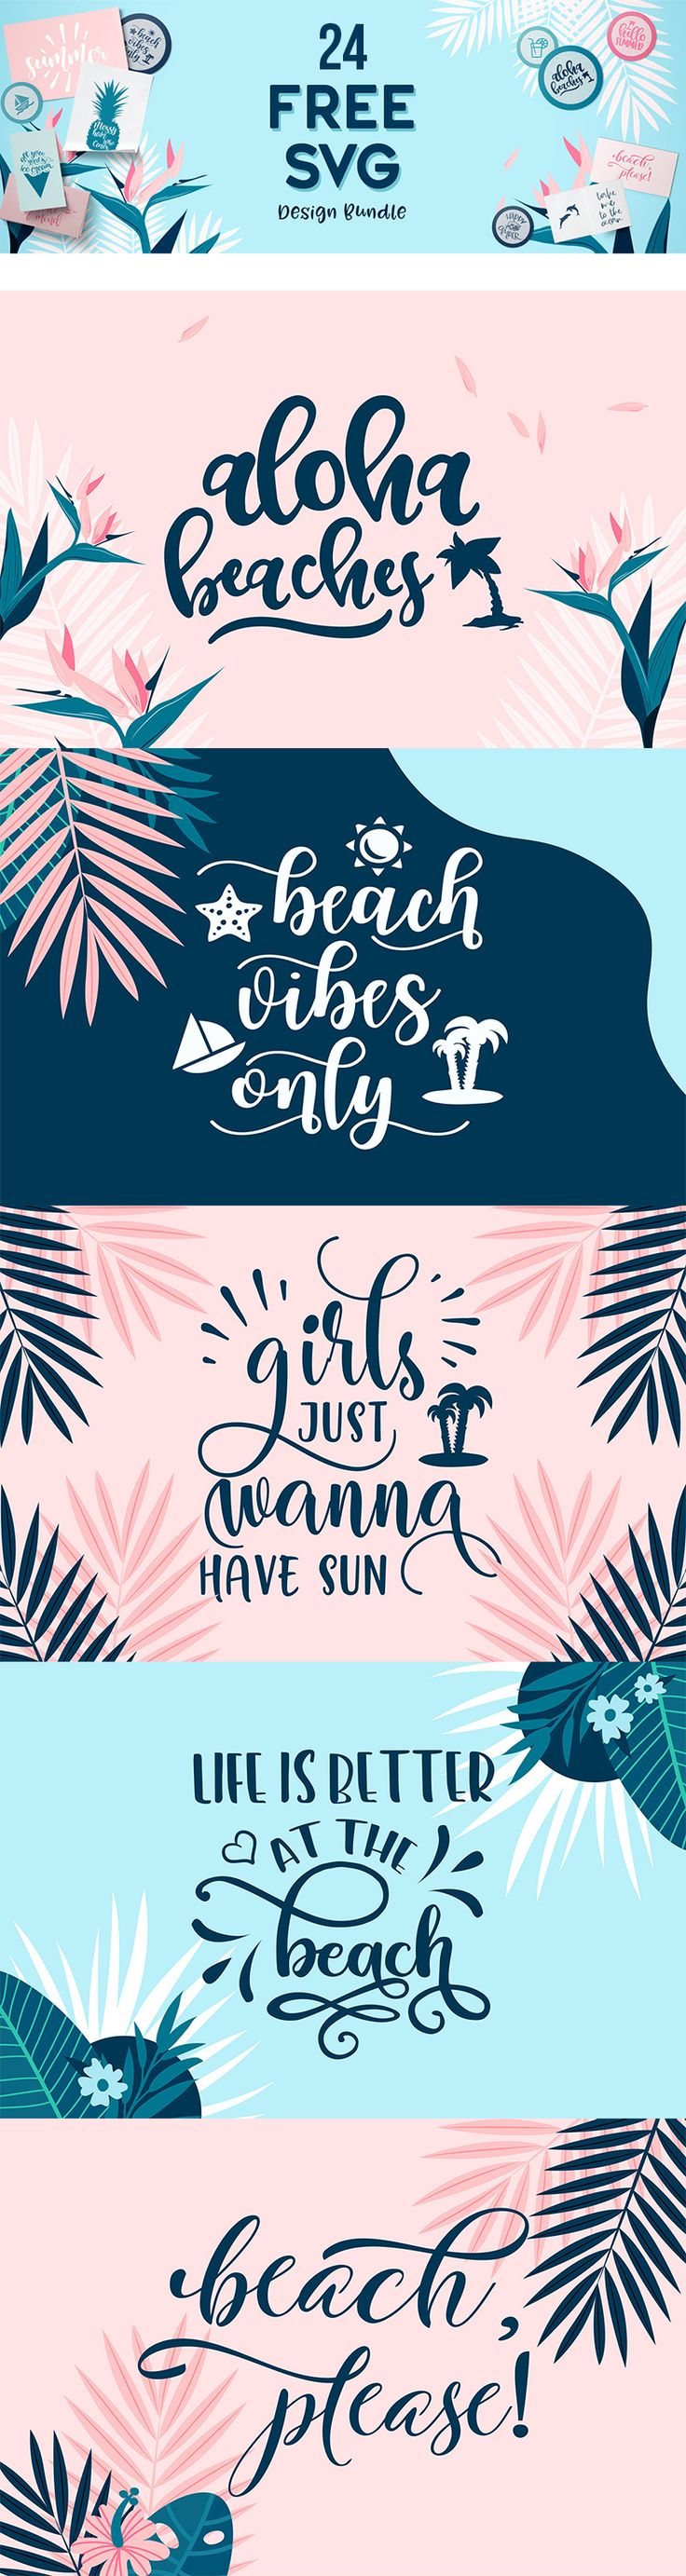 The FREE SVG Design Pack! Download 24 free beachy file before it's gone!